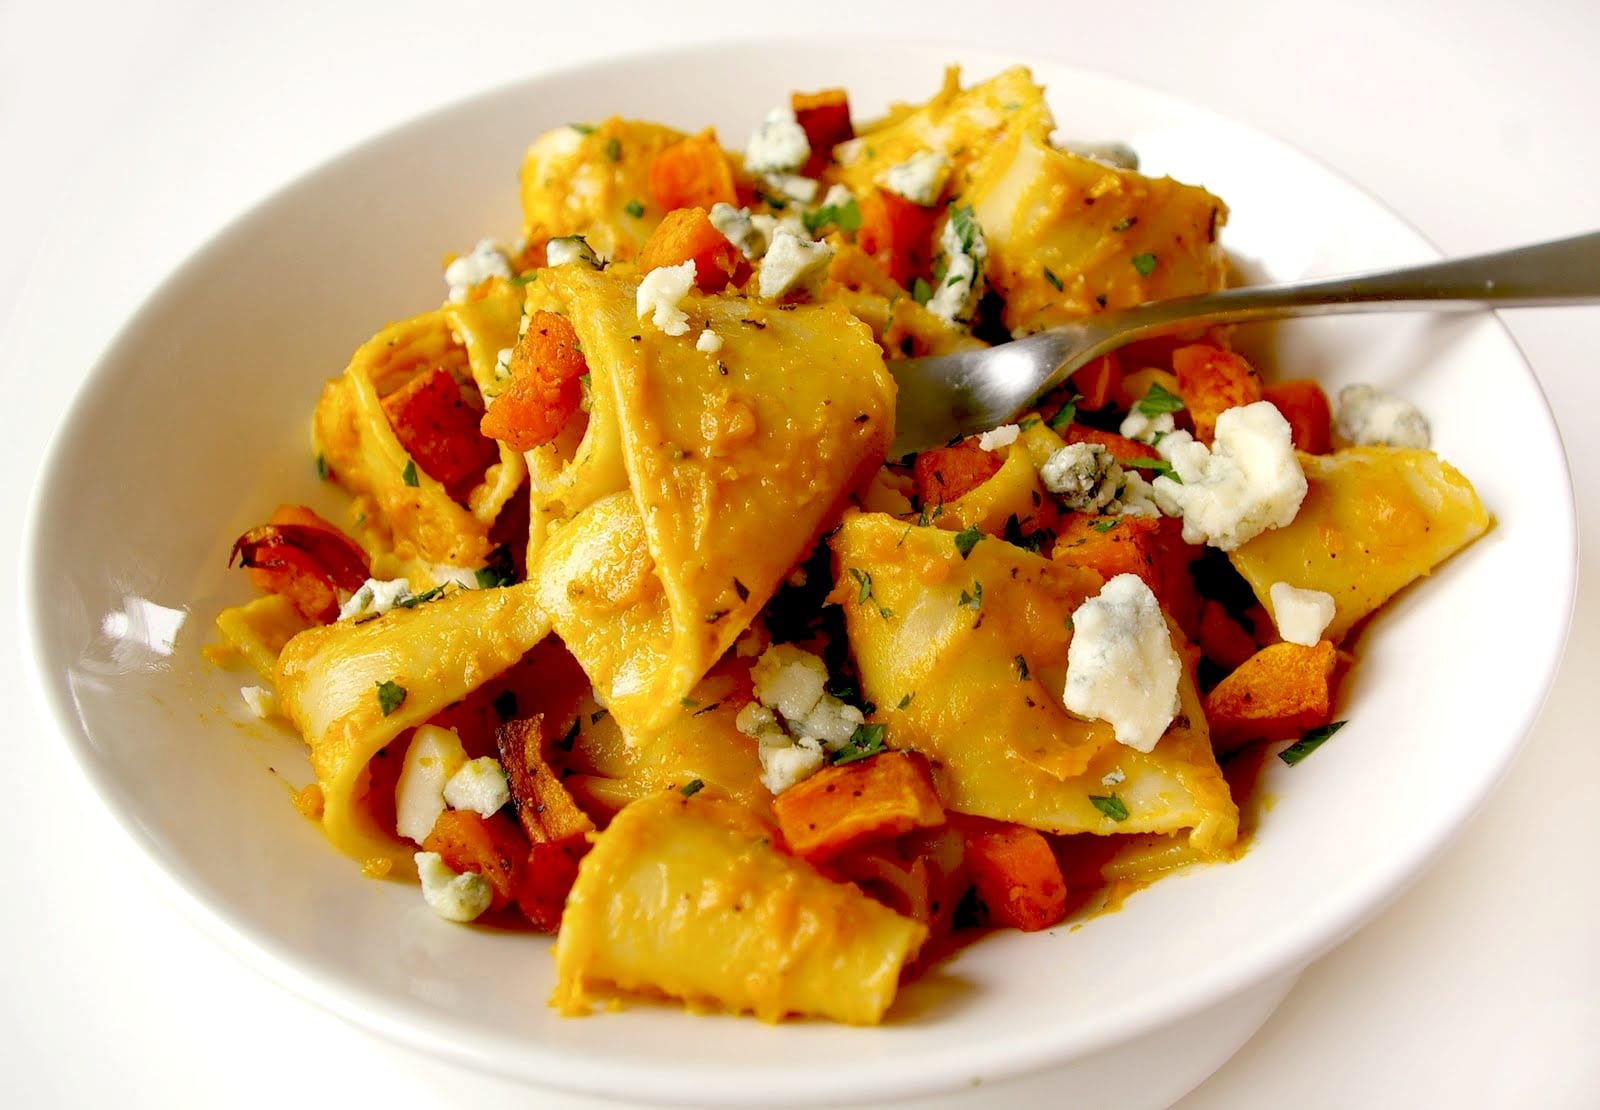 Tagliatelle with Brown Butter and Butternut Squash